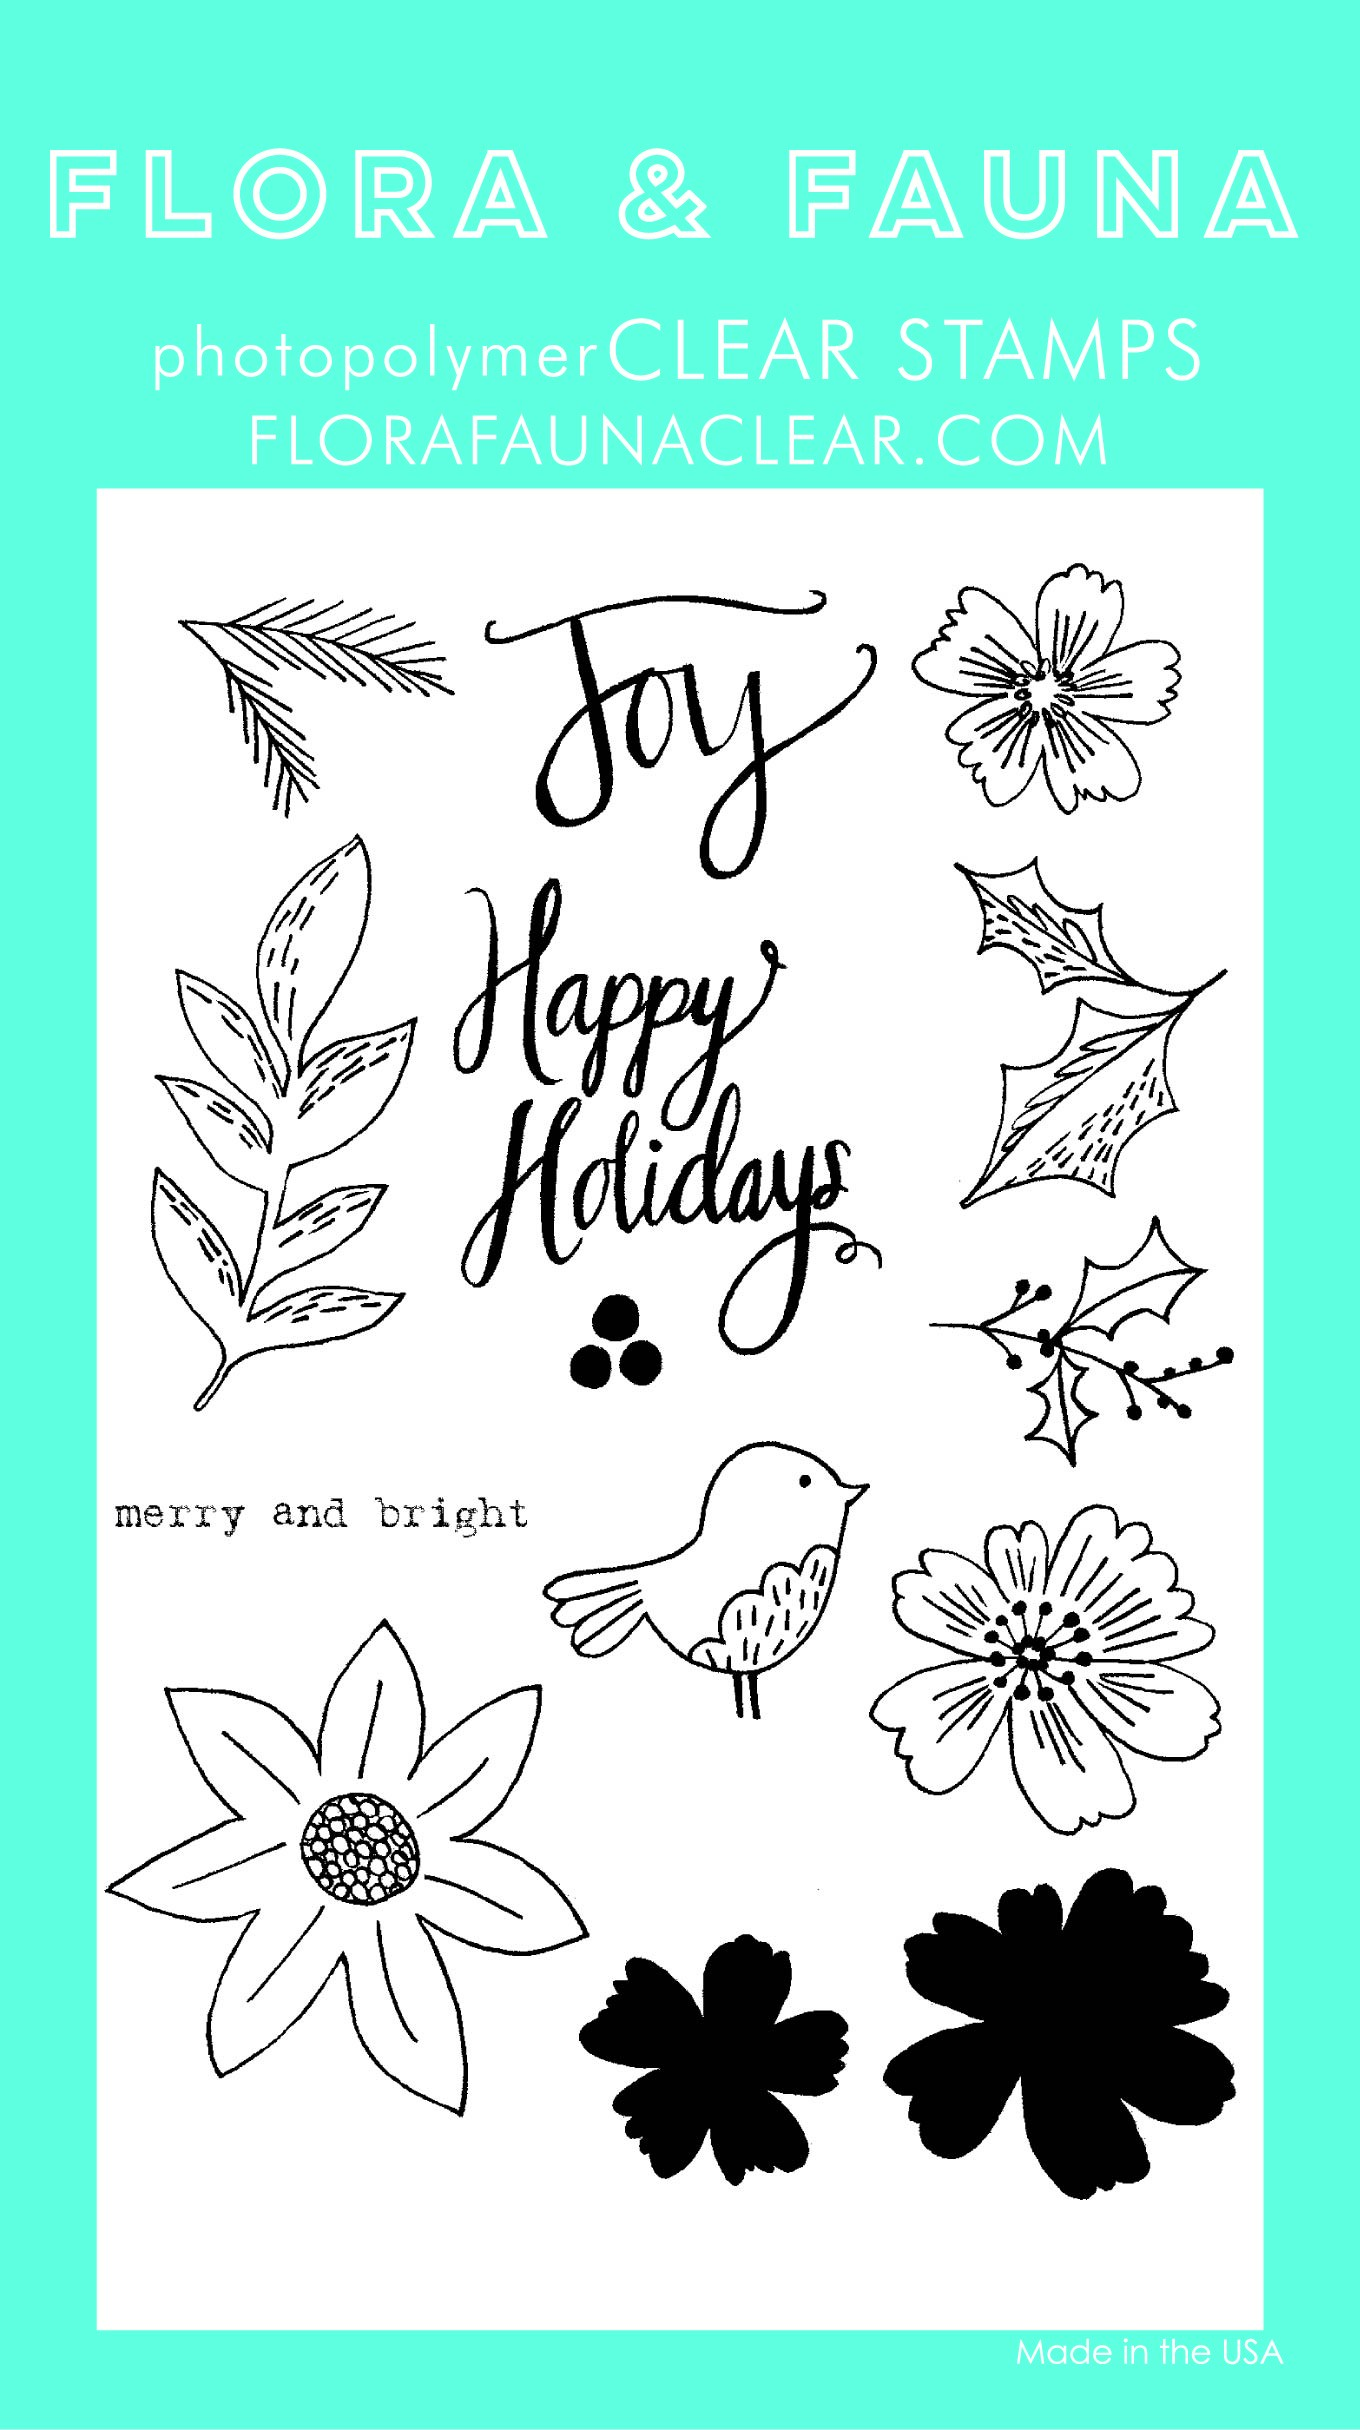 Flora & Fauna Floral Happy Holidays Clear Stamp Set 20152